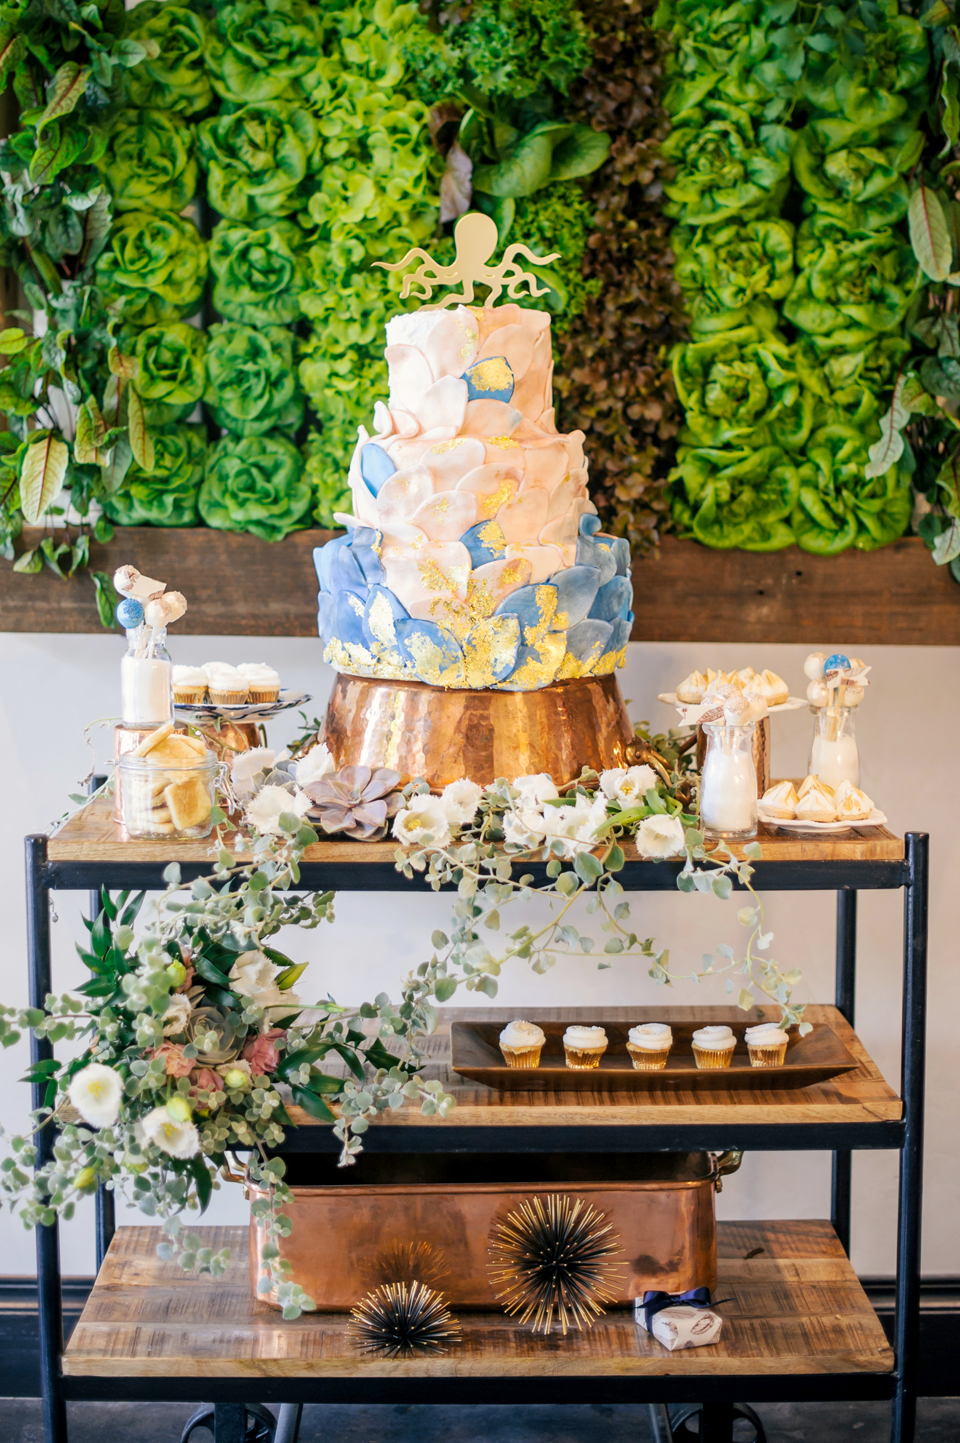 Cake by Chocolate Pi, Angel He Photography 2014